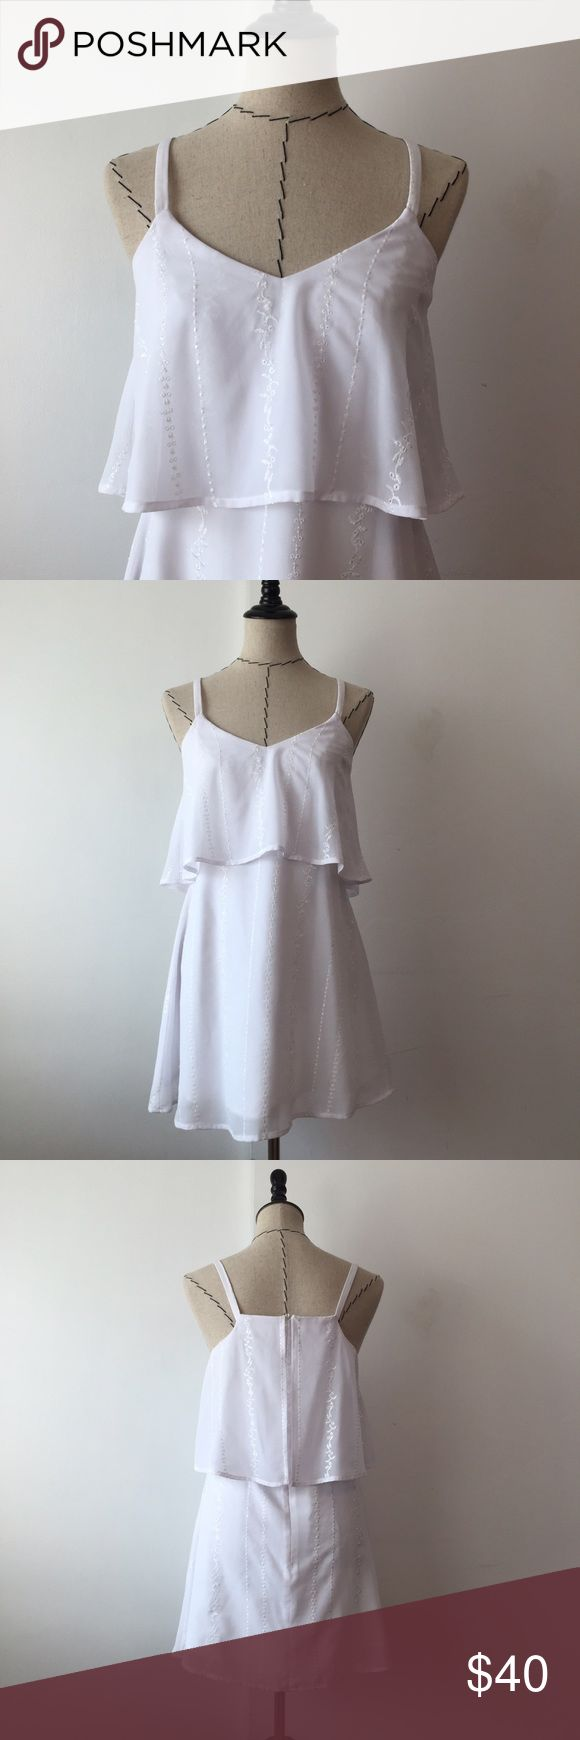 Love Sadie White embroidered dress Cute white embroidered dress! Size small. Zipper down the back. Has a slip underneath. Length is approx 23.5 from lowest and approx 25.5 from strap. Pit to pit is approx 16 Urban Outfitters Dresses Midi